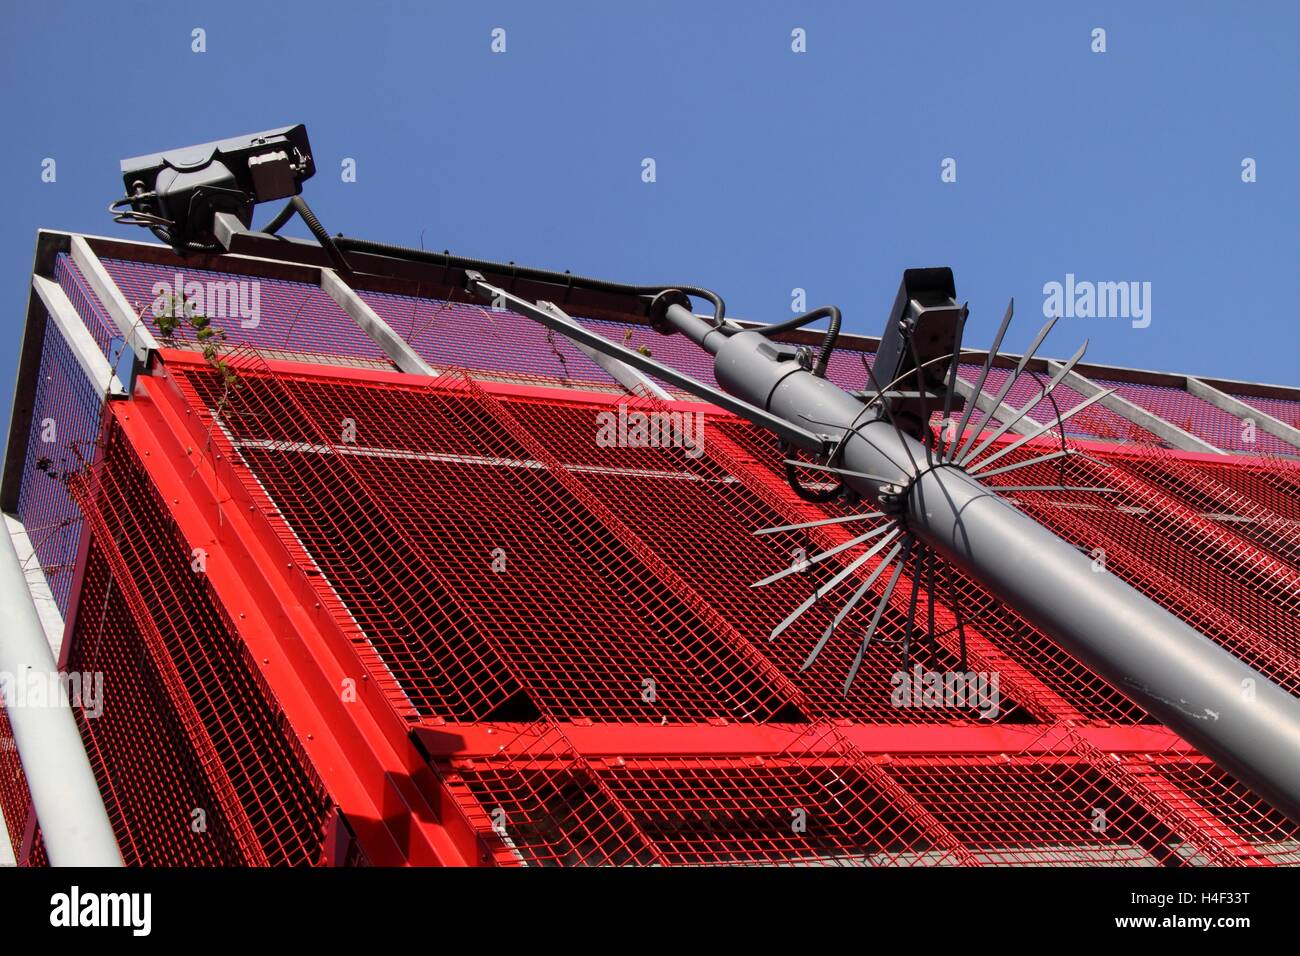 CCTV cameras outside the bright red car park railings of Brunel Street car park in Birmingham city centre - Stock Image